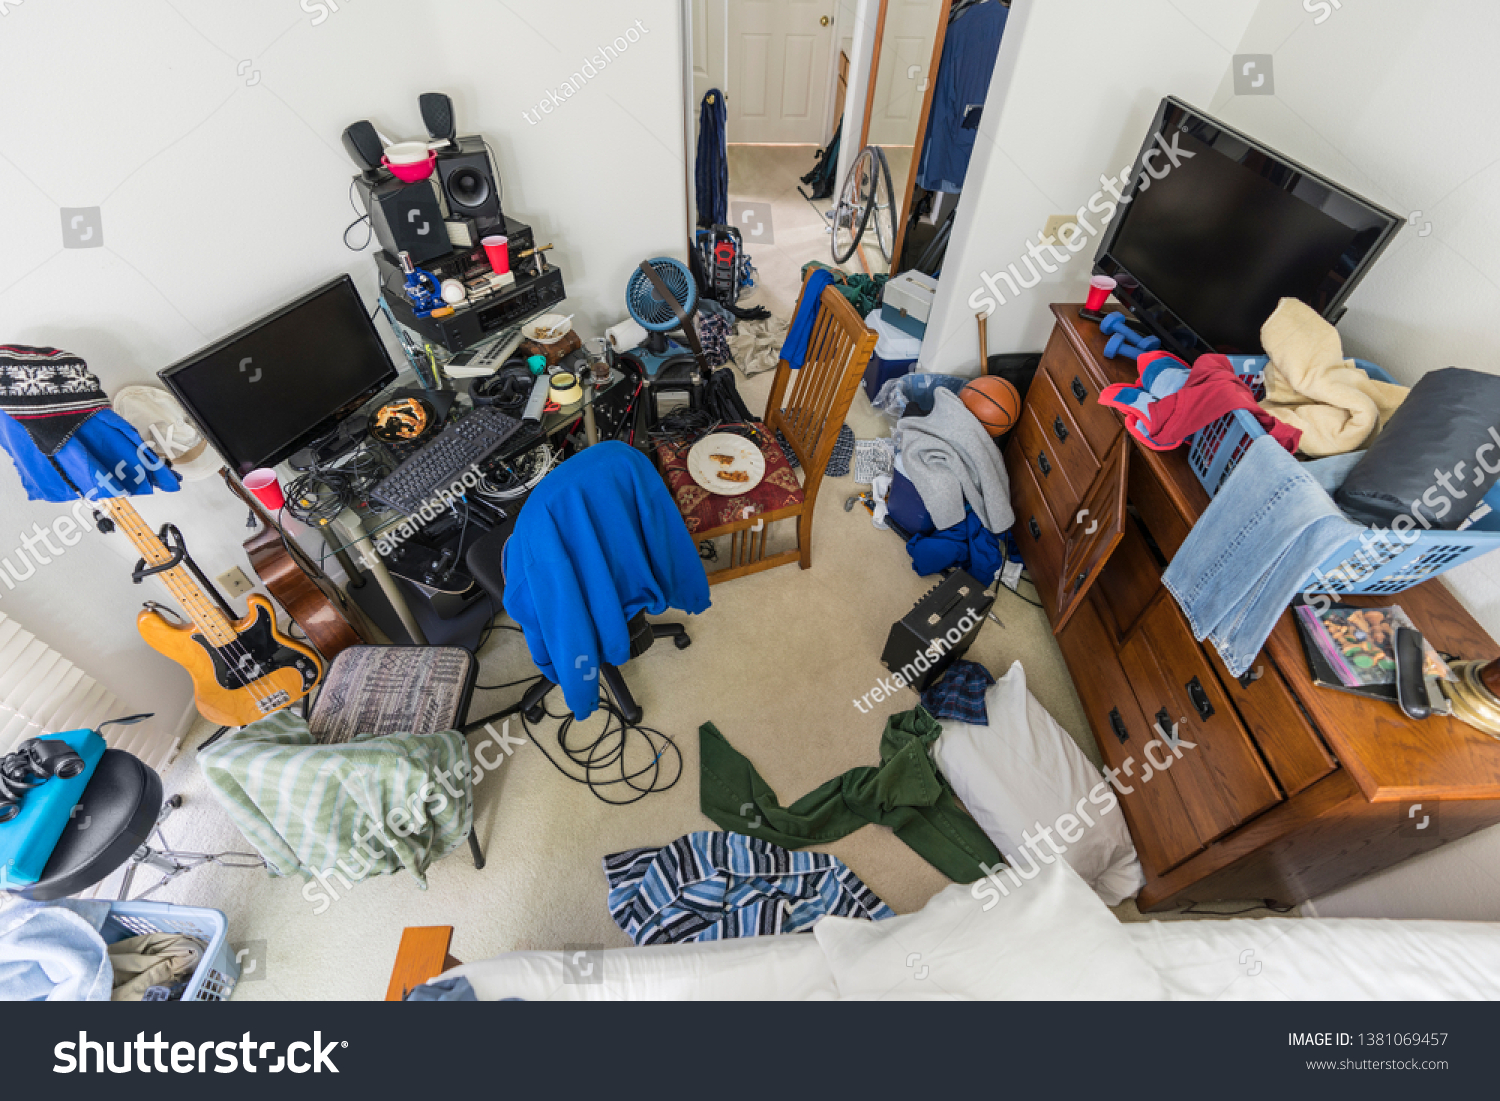 Very messy, cluttered suburban teenage boys bedroom with piles of clothes, music and sports equipment.   #1381069457